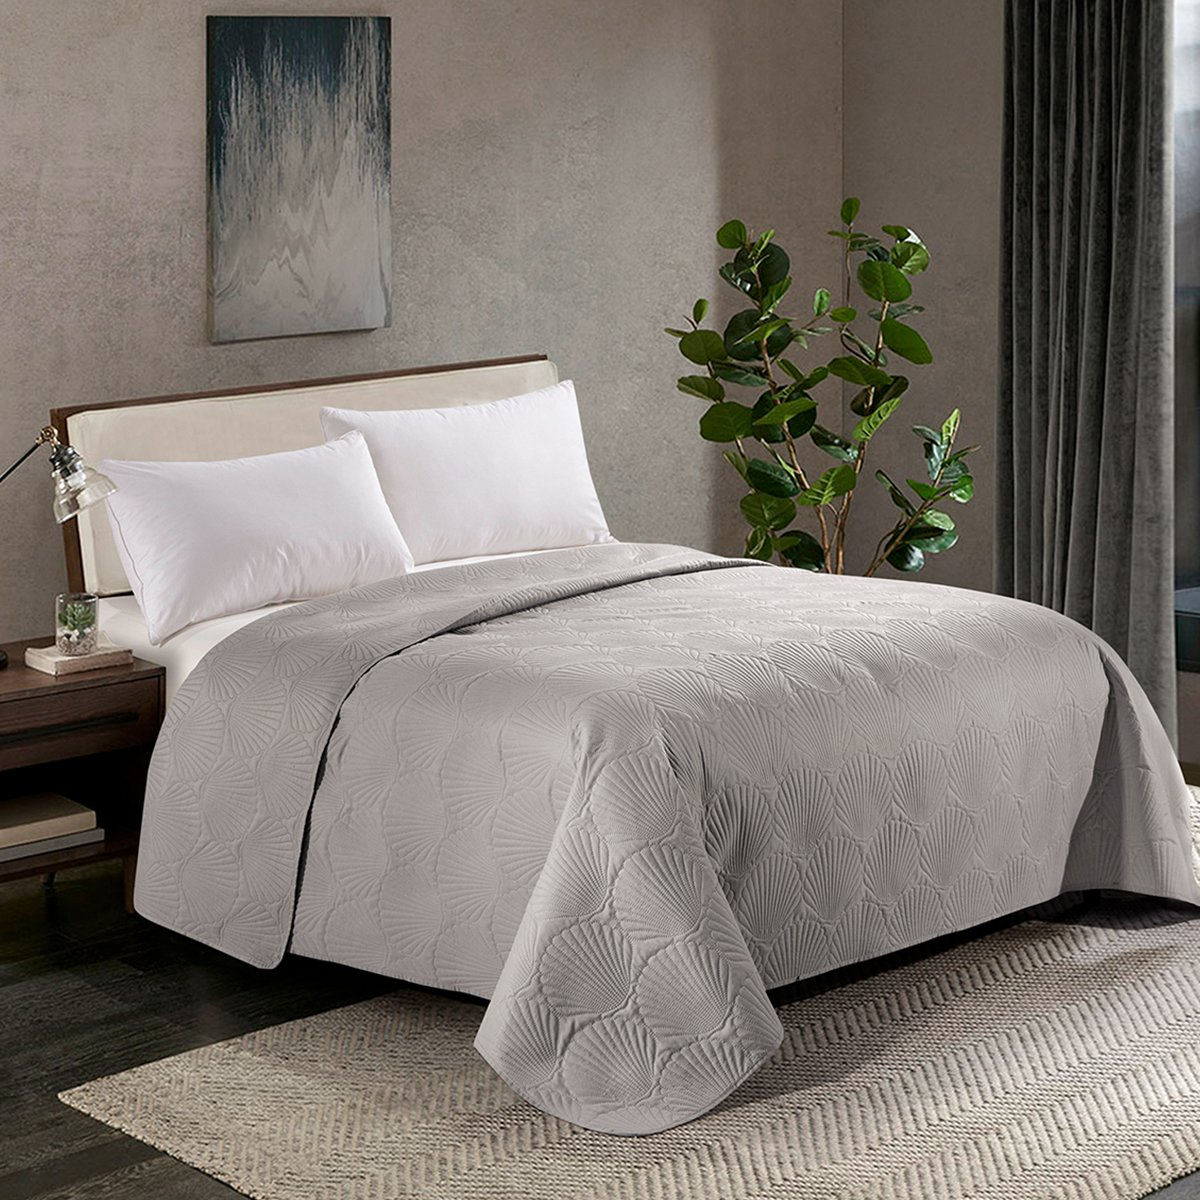 HollyHOME Coastal Style Super Soft Solid Single Shell Parttern Pinsonic Quilted Bed Quilt Bedspread Bed Cover, Grey, Twin